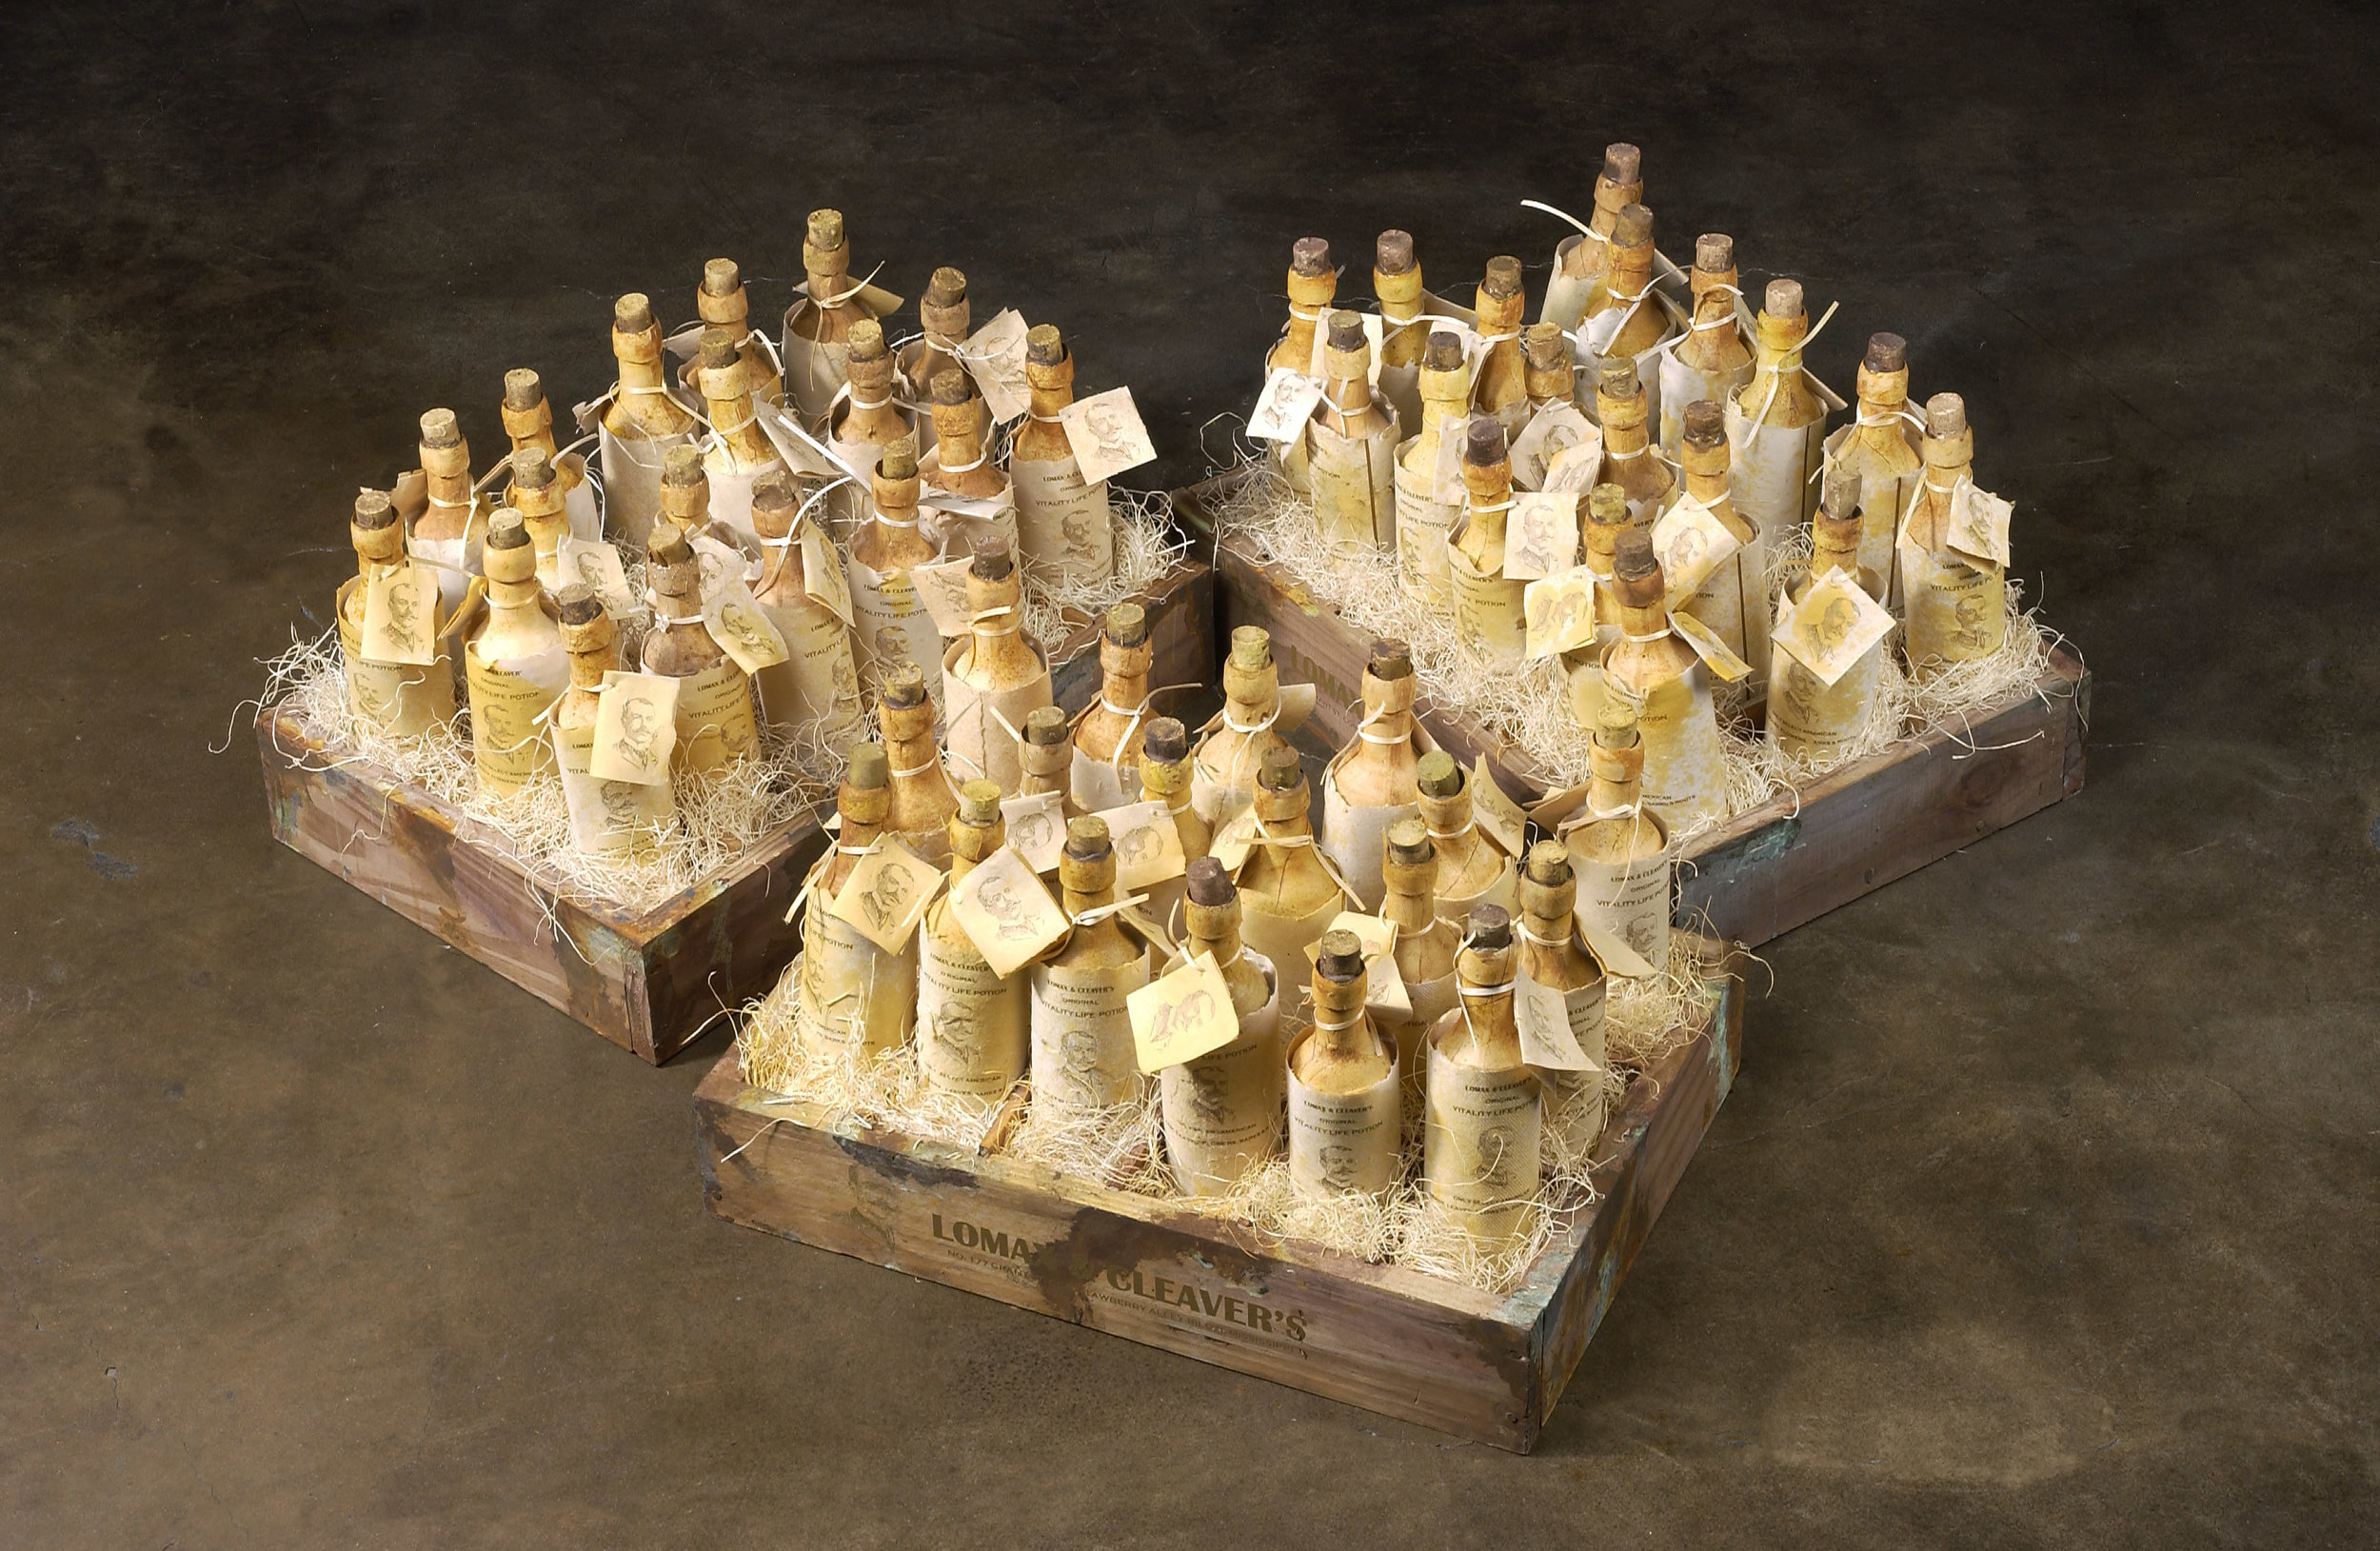 """The Last Lost Shipment of An Untested Life Potion, 2003-2004 Cast and carved bone dust from every bone in the body, sulfur, homebrewed moonshine (potato derived alcohol), wine elixir (water, sugar, fermented black cherries, yeast, gelatin, tartaric acid, pectinase, sulfur dioxide, oak flavoring, fortified with aged holy water, angelica root, rosary vine, temple bells, Bishopswort, myrrh resin, prayer plant, fig leaf, immortal root, carbon, chlorophyll, spirulina, brimstone, Devil's backbone, Devil's shoestring root, ground venomous snake bone, Virginia snakeroot, Devil's club leaf, bee venom, dead sea salt, hemlock, blood root, tare, melted vinyl record droplets from Peggy Lee's """"Is That All There Is"""" and Roy Orbison's """"In Dreams""""), homemade paper, pine, rust, ribbon, water extendable resin, typeset 76,2 x 35,6 x 56 cm - 30 x 14 x 22 inches"""